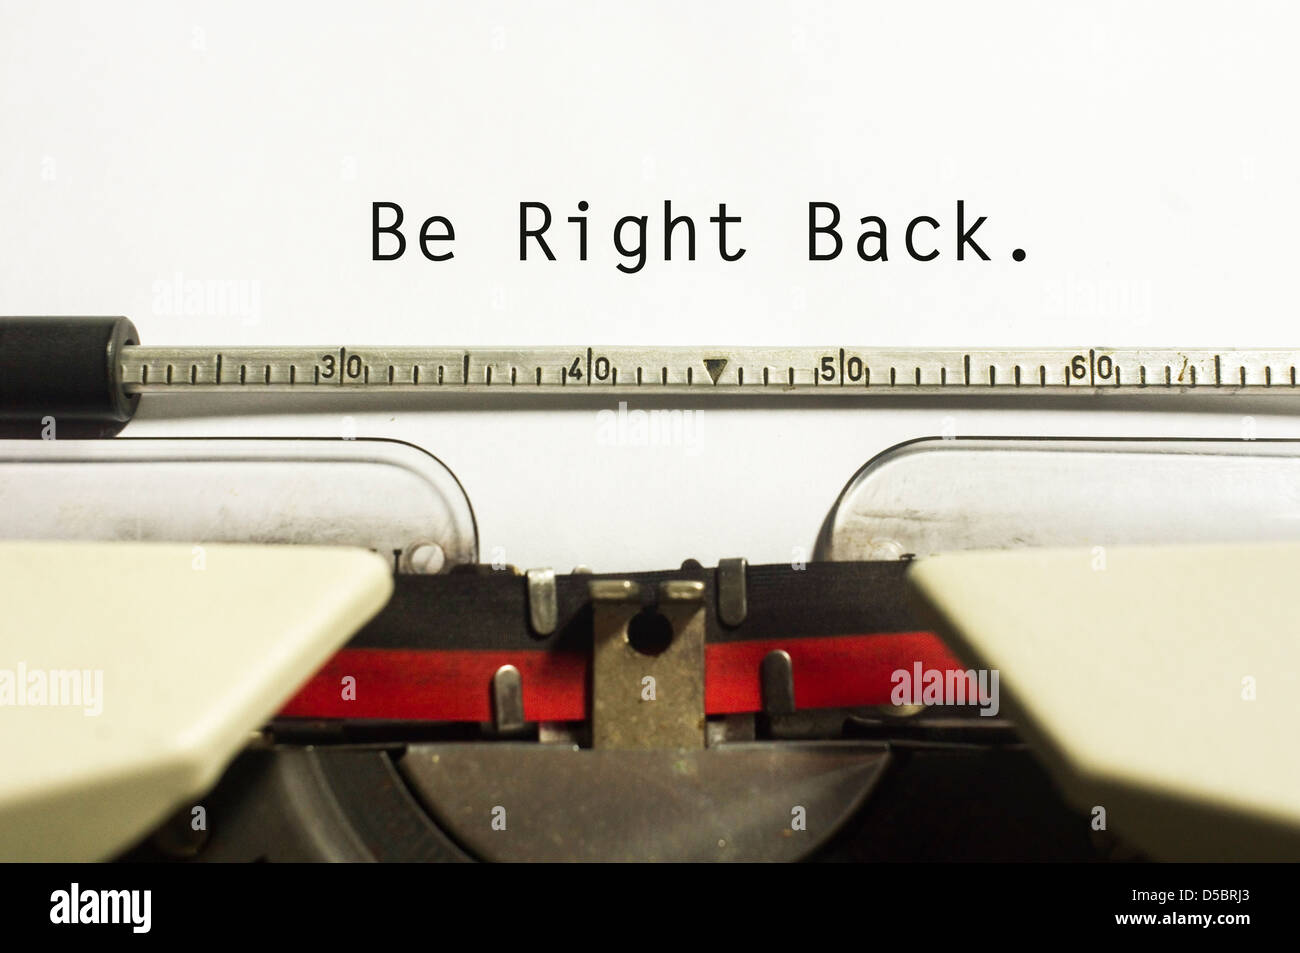 Be Right Back Concepts With Message On Typewriter For Website Maintenance